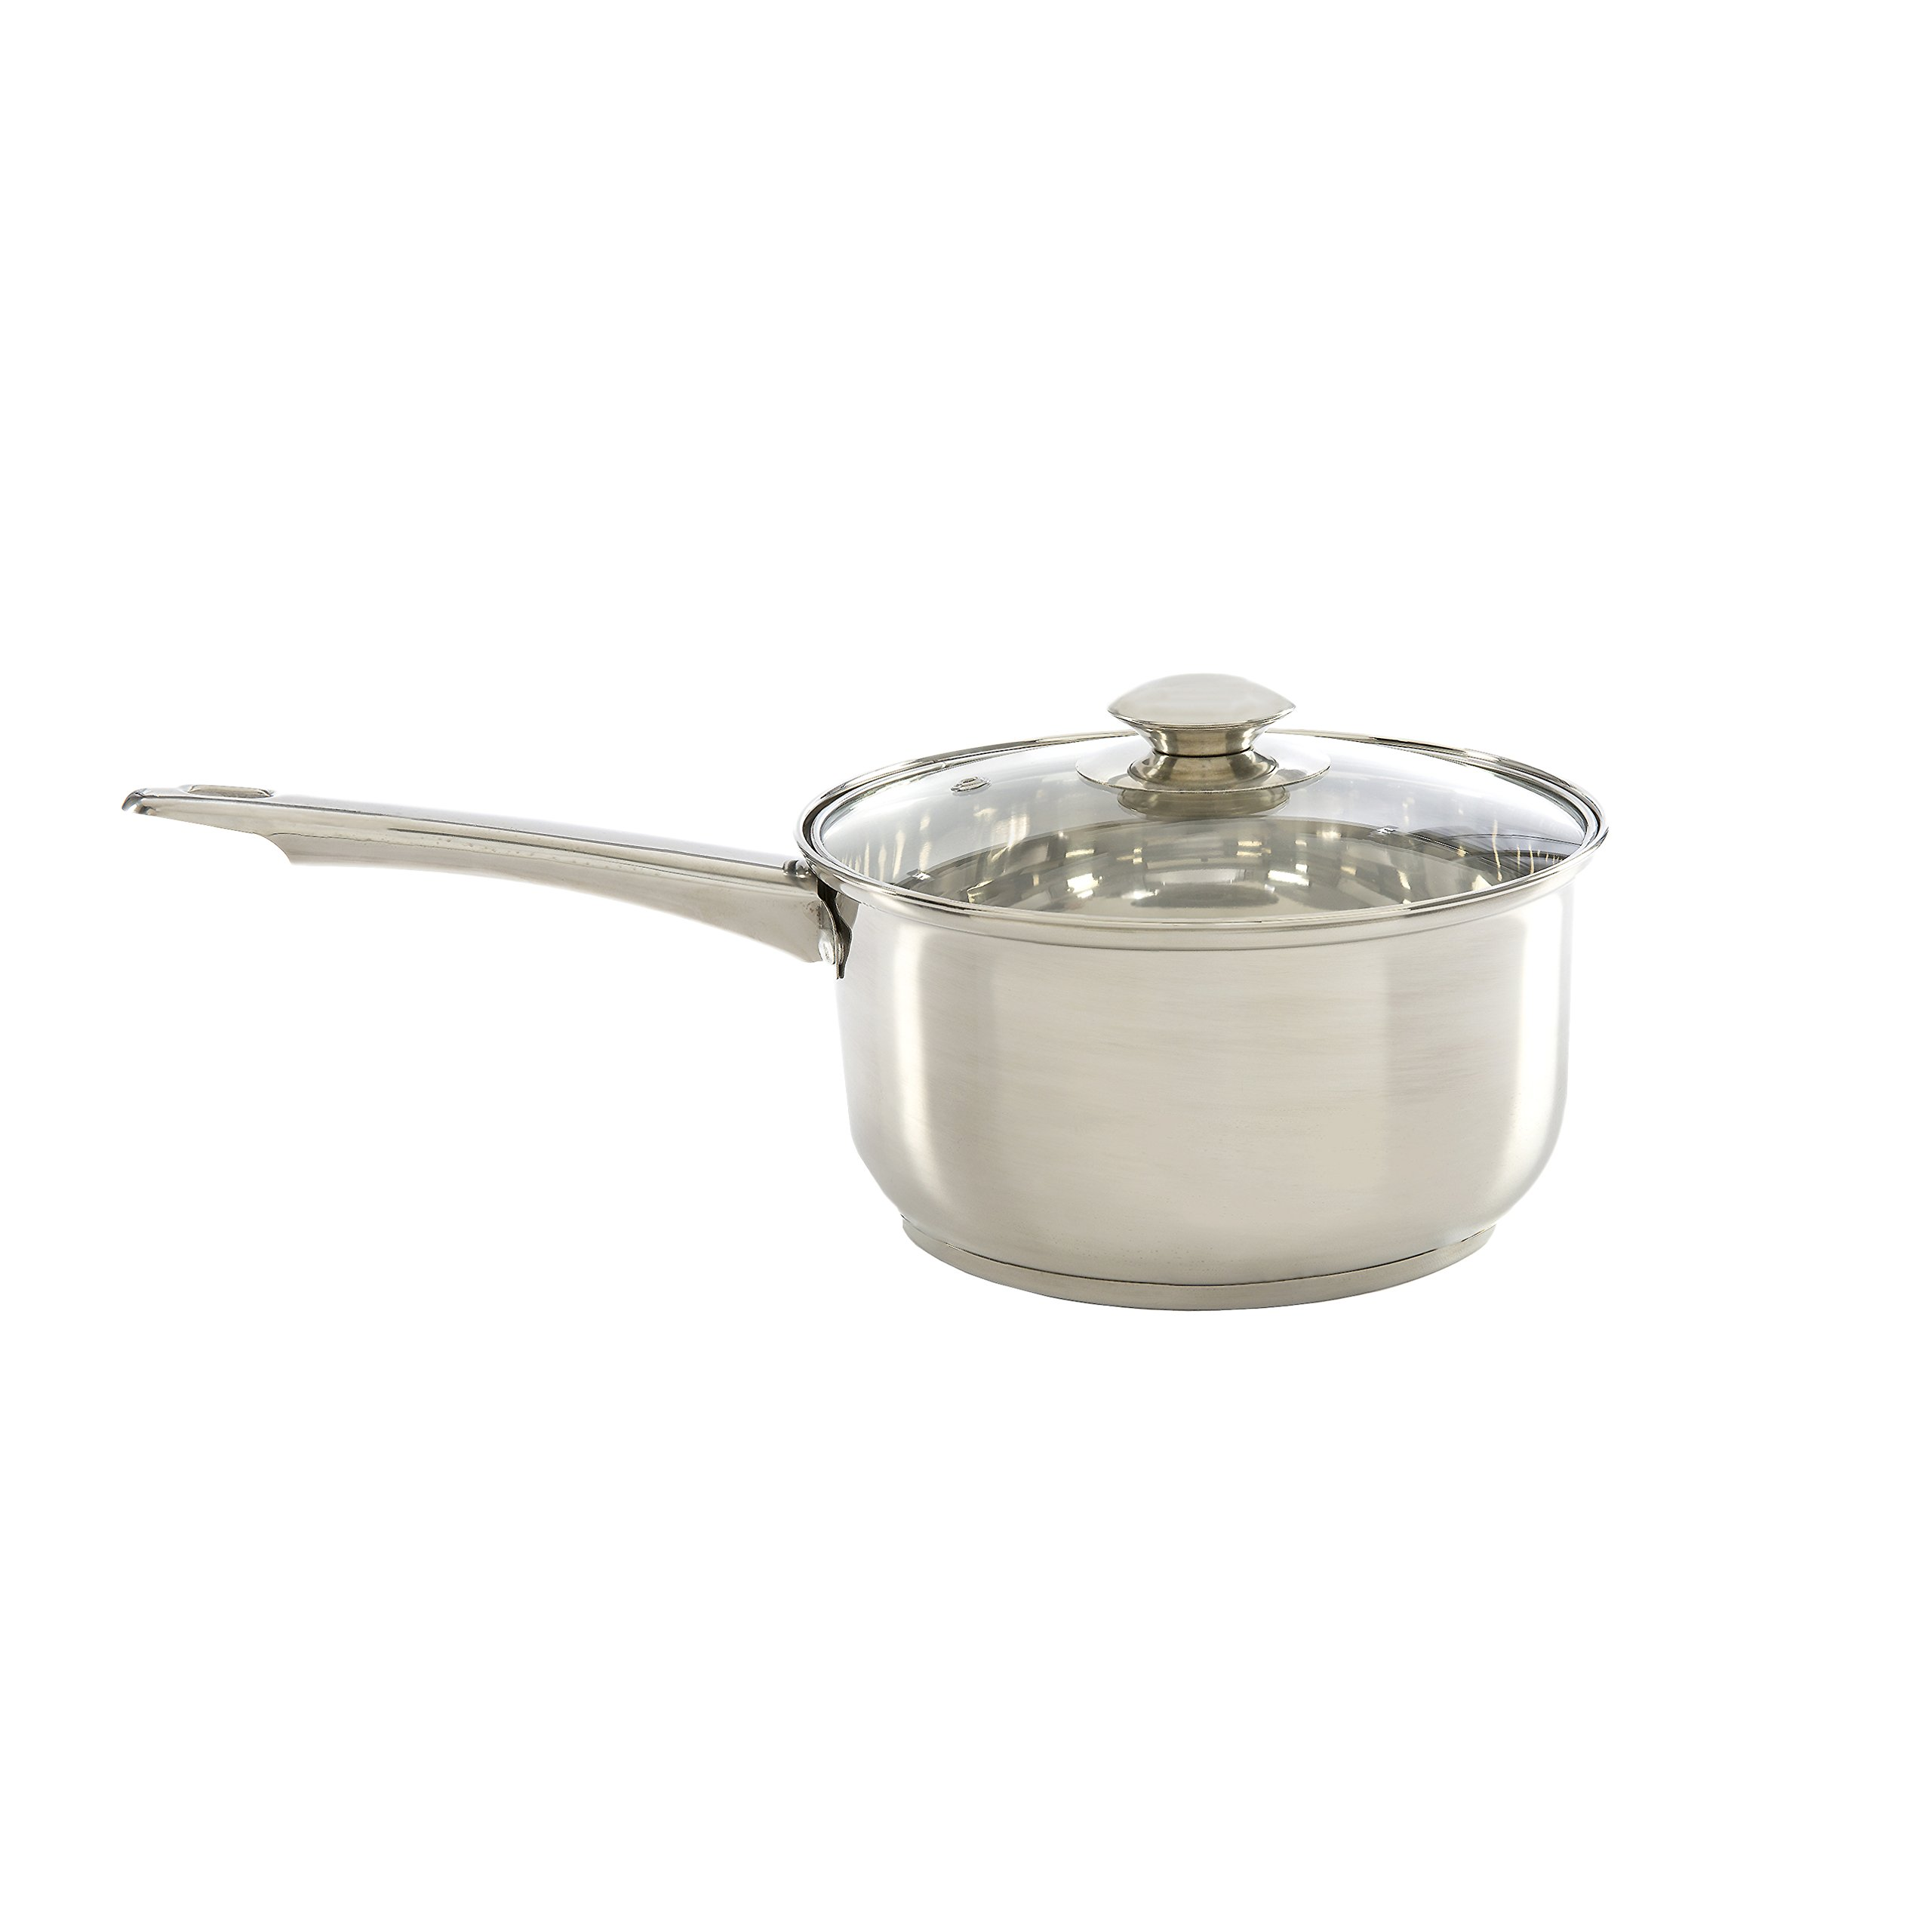 Ecolution Pure Intentions Saucepan 2 Quart - Vented Tempered Glass Lid - Stainless Steel